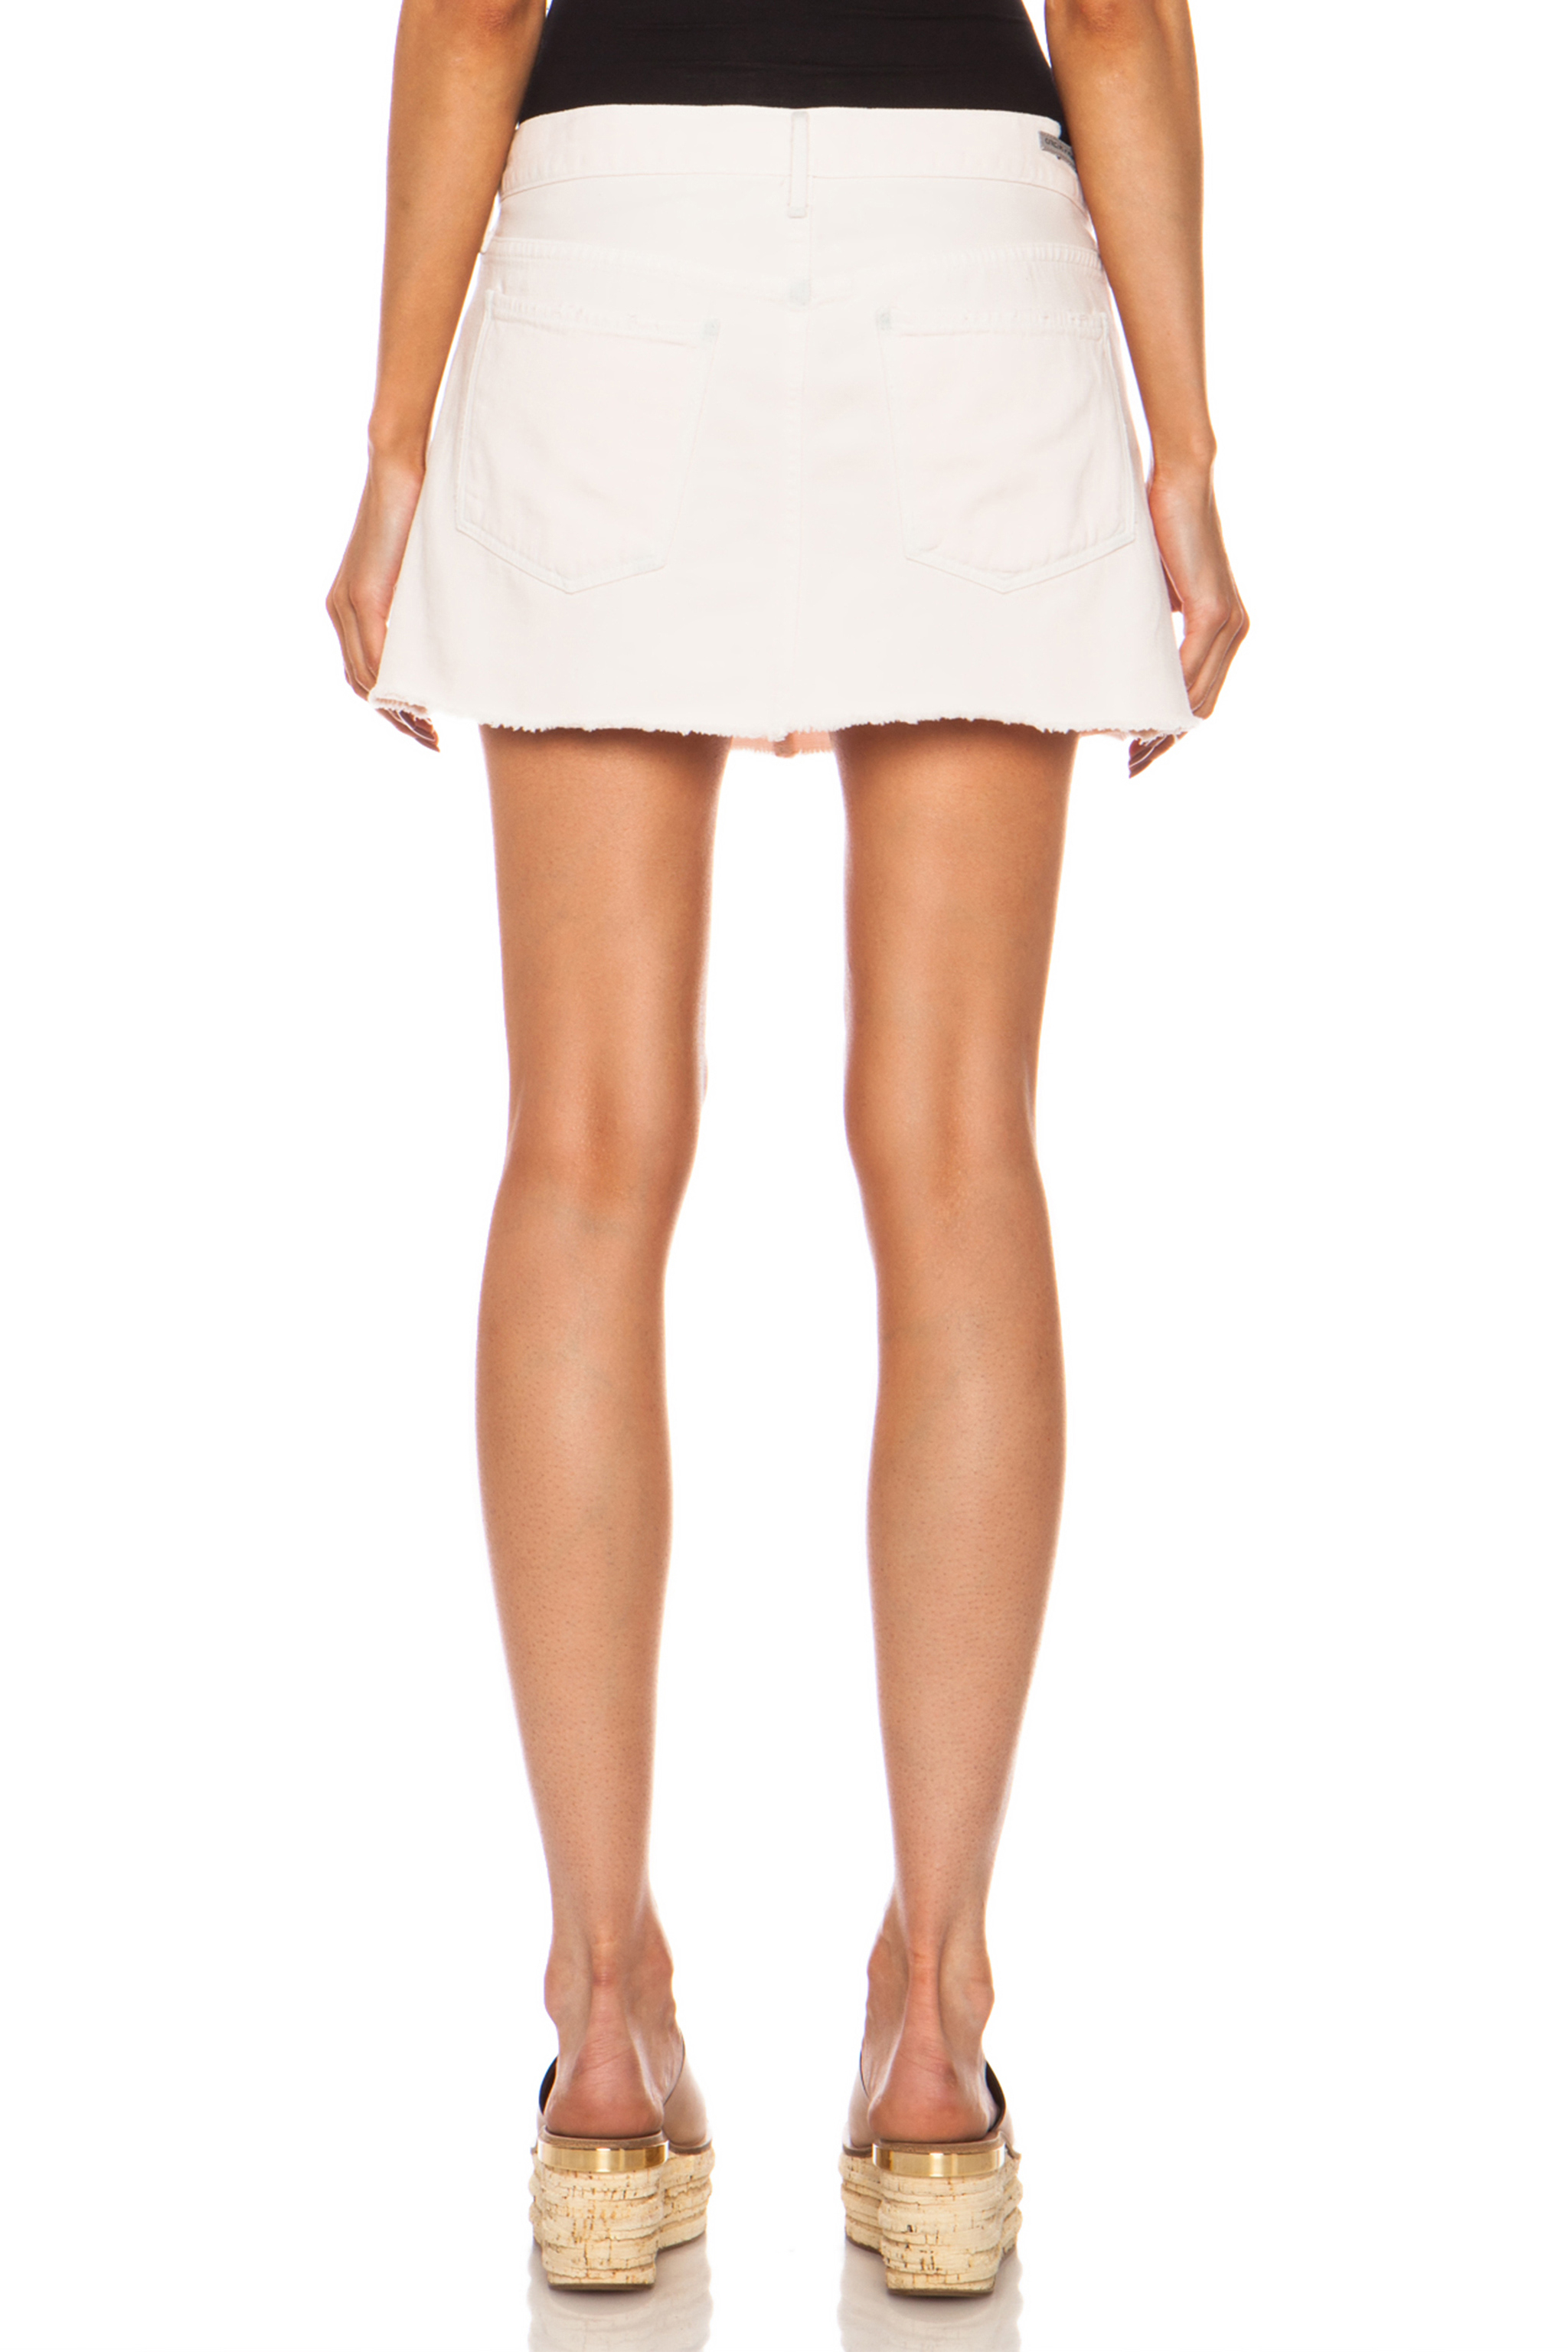 Citizens of humanity Daria Cotton Mini Skirt in Pink | Lyst